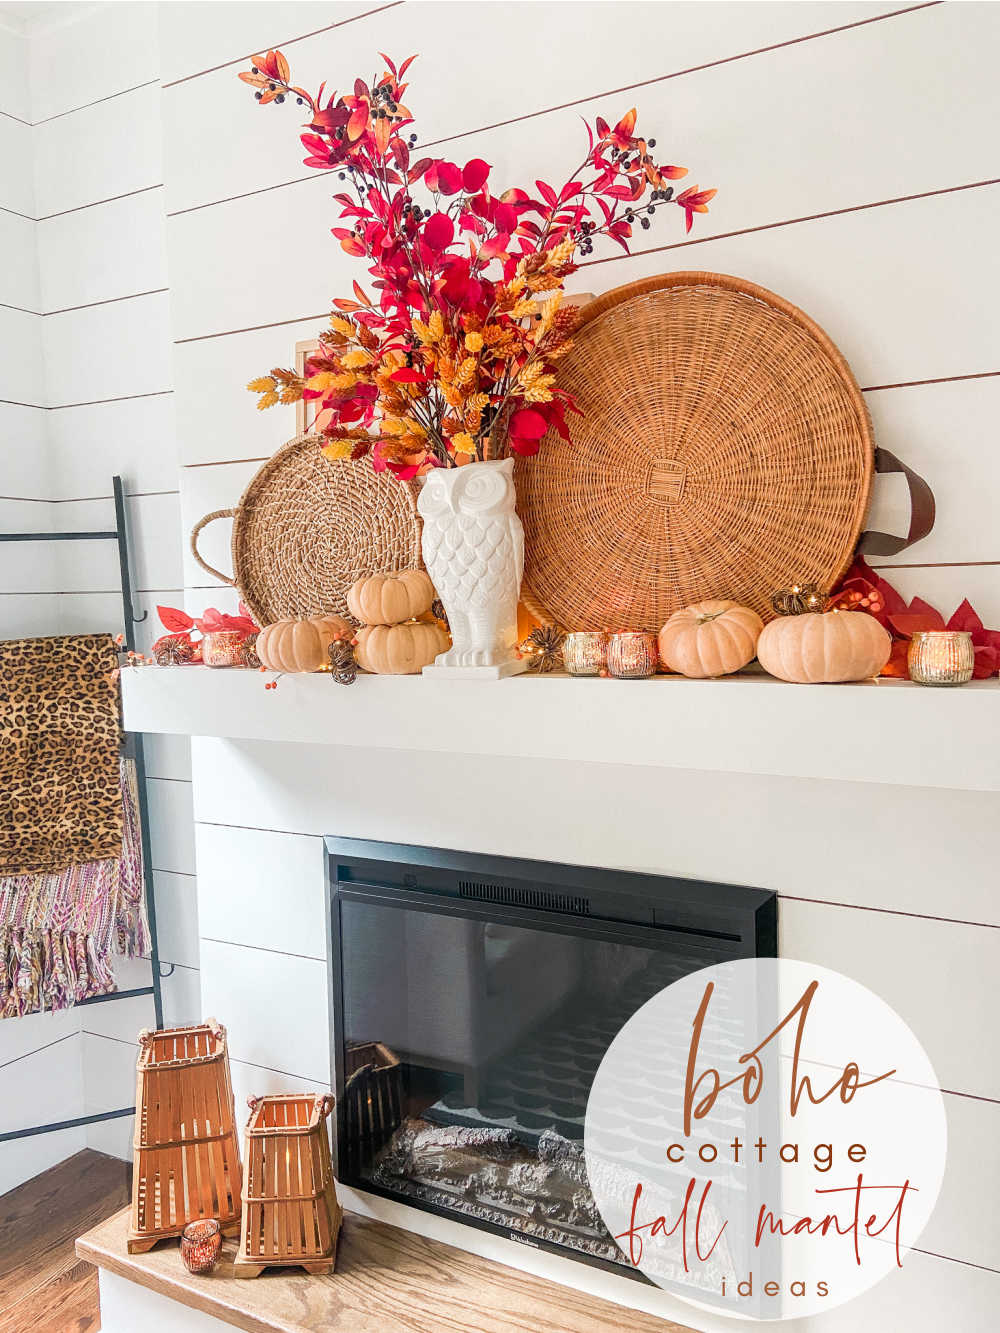 Boho Cottage Easy Fall Mantel Ideas. Create a earthy, textured mantel using items you already have!